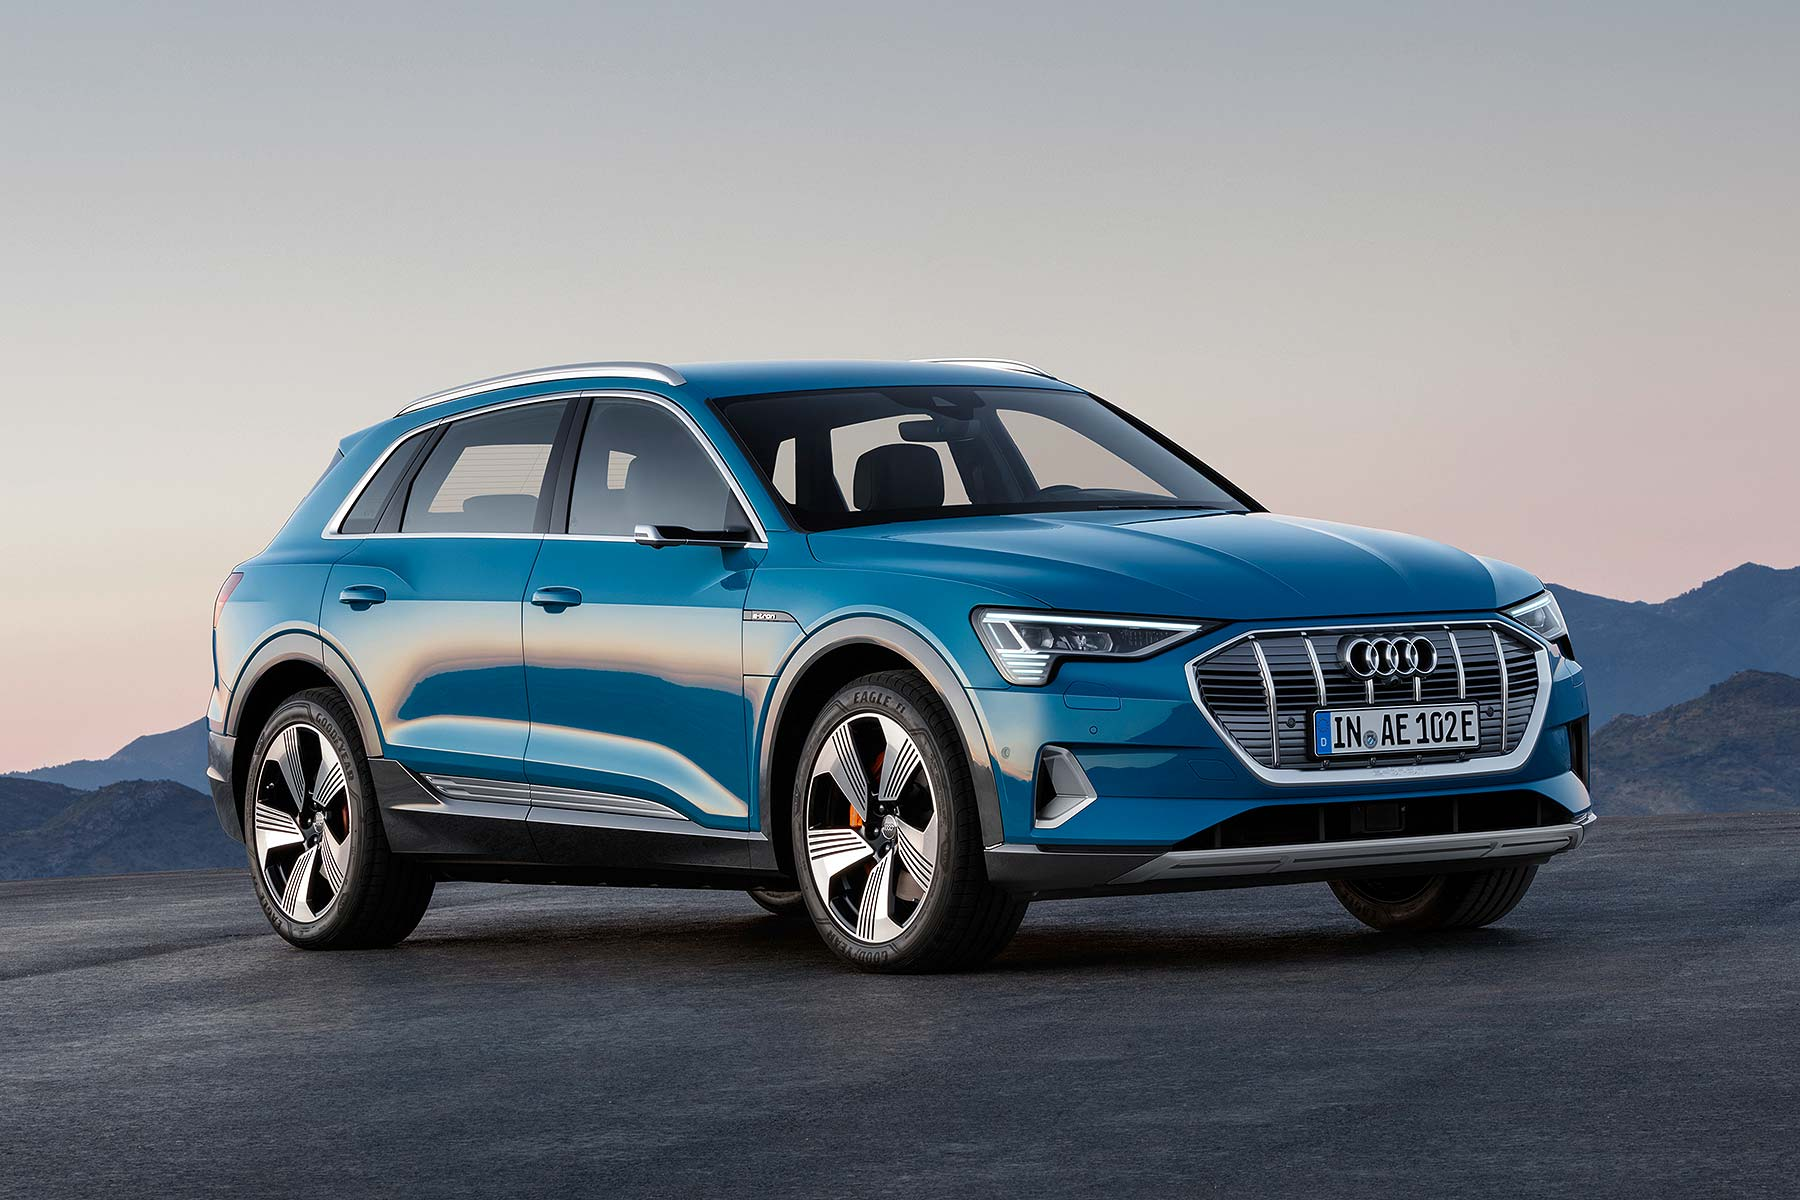 2019 audi e tron electric suv revealed begins 12 car ev surge motoring research. Black Bedroom Furniture Sets. Home Design Ideas